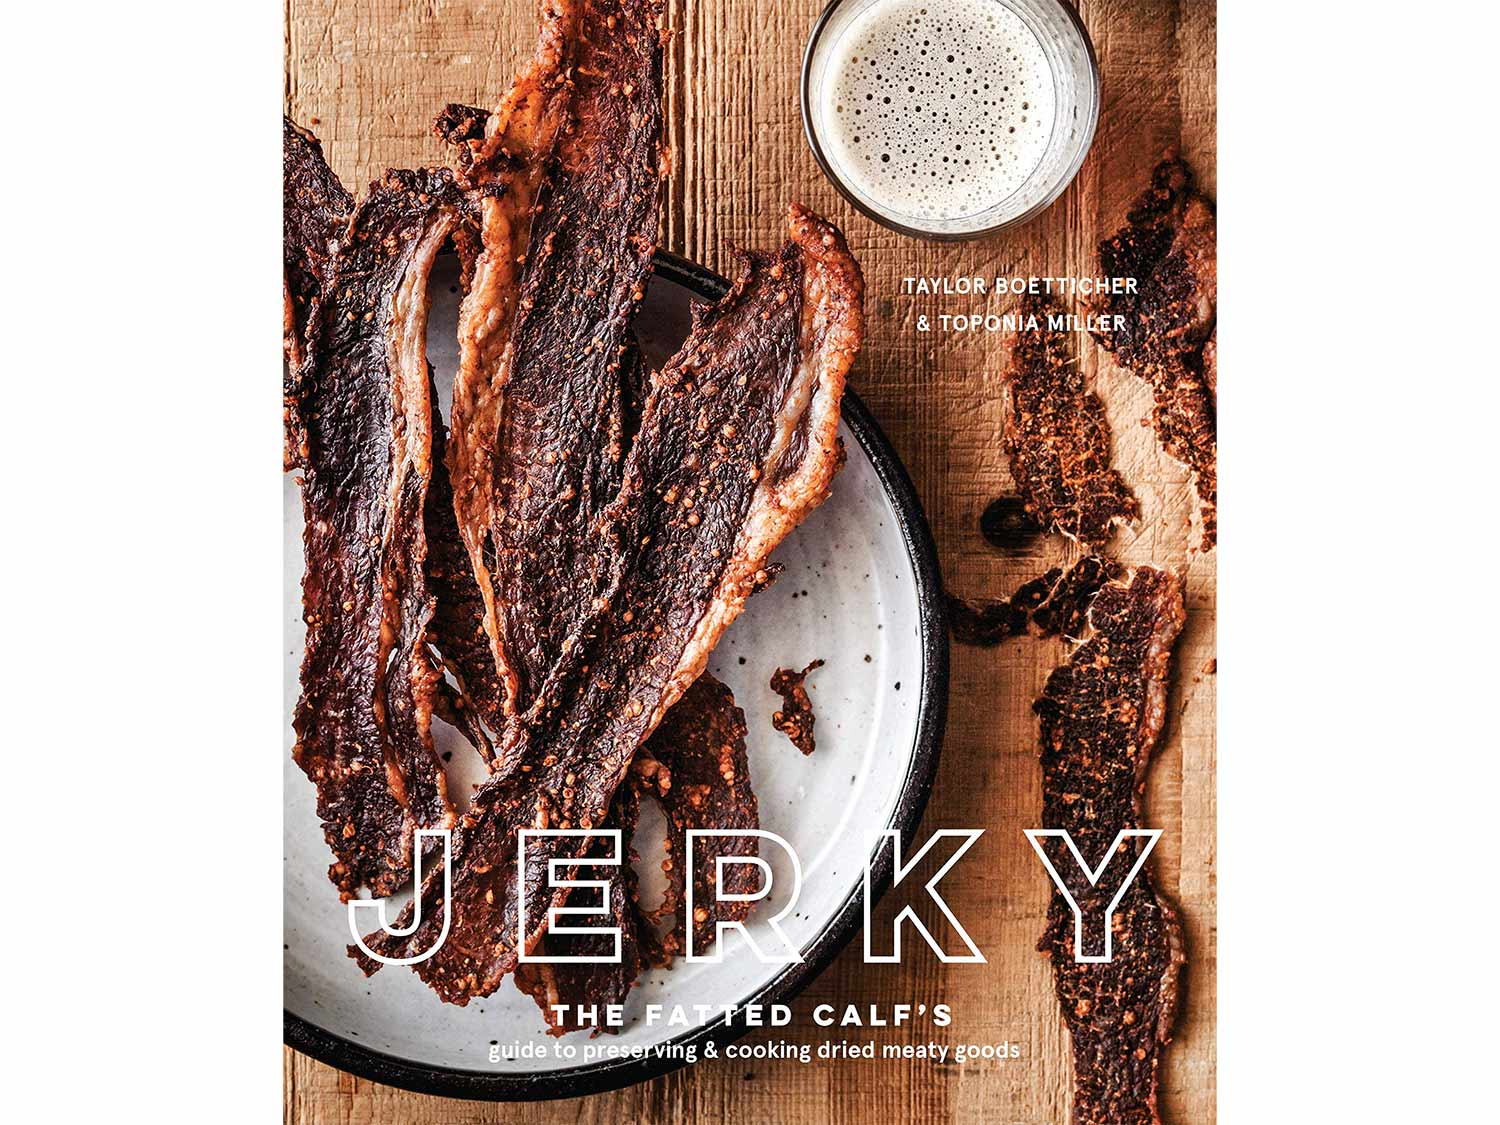 A book cover with beef jerky on a wooden table.